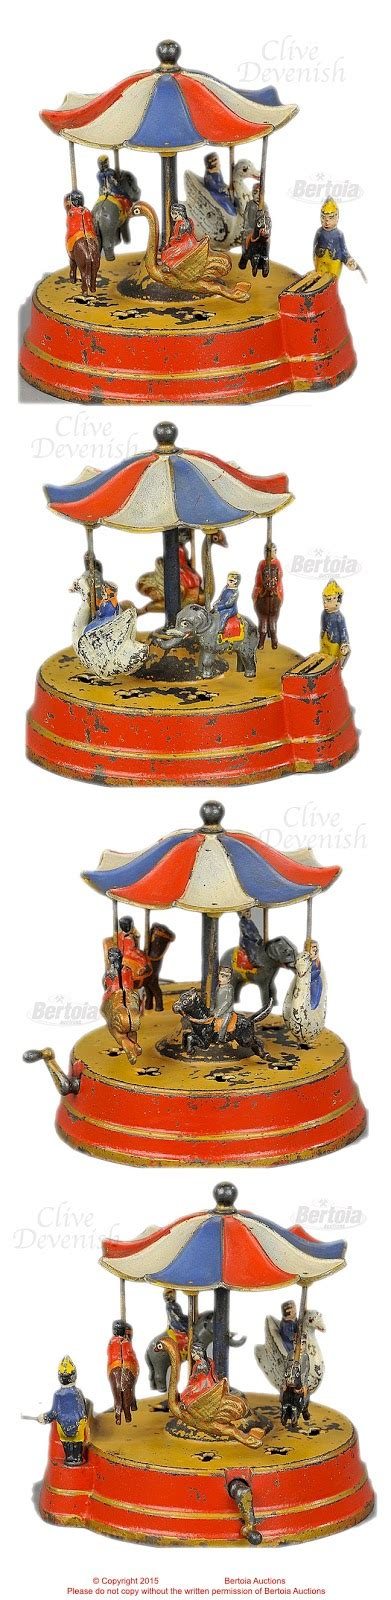 Imbb 17 Tastetea Roundup Part Viii by Antique Toys An Antiques Dealer Sells His Collection